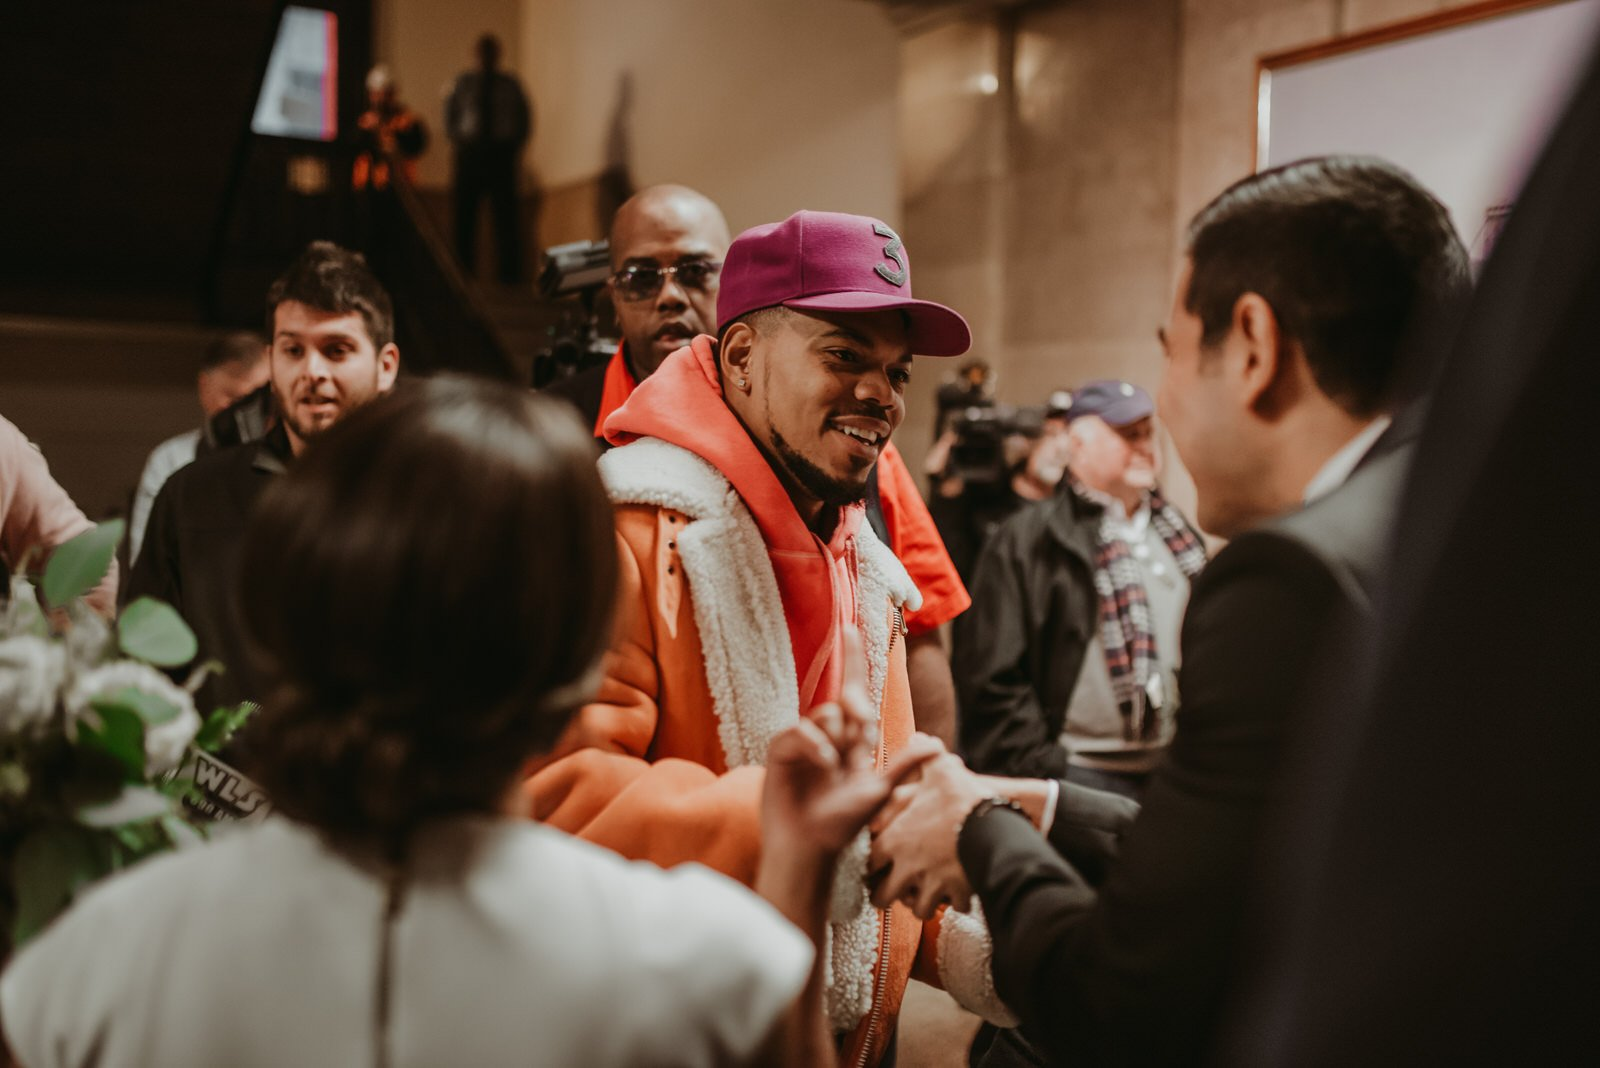 Chance the rapper at a wedding Chicago City hall elopement, the Adamkovi